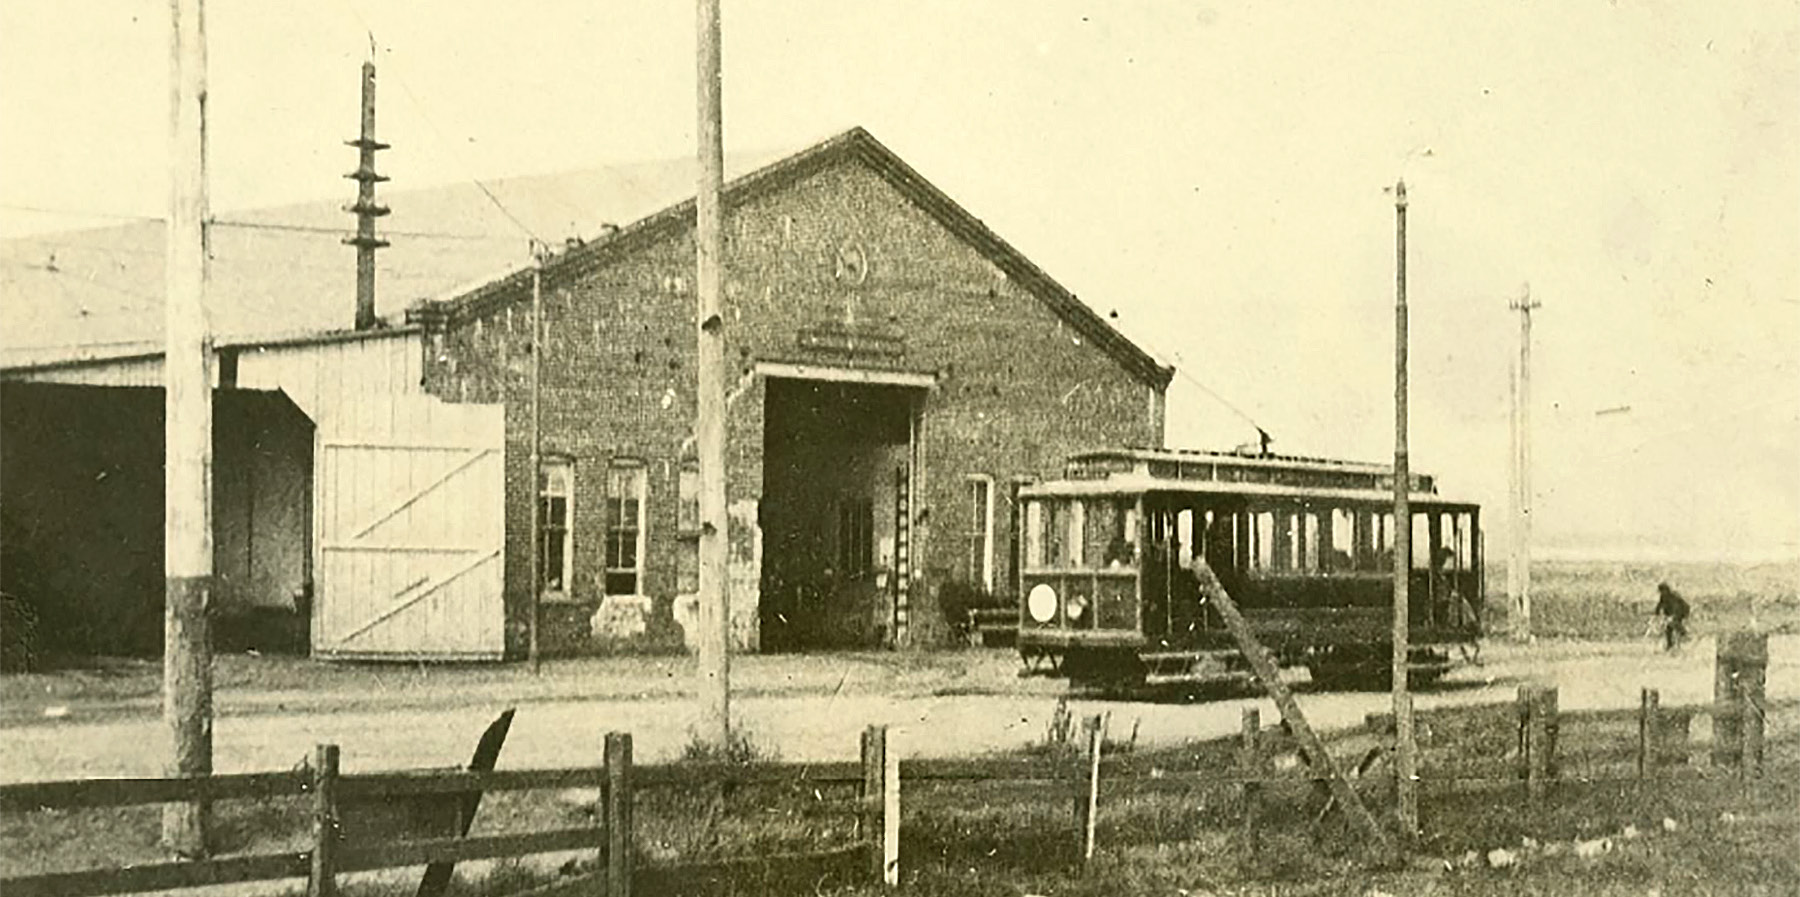 William Gardiner Transportation Collection     This building stood at Atlantic Avenue and Webster Street. It served first as a carbarn and stables for Theodor Meetz' horse-car lines and later as a power station when the lines were converted to electic-powered streetcars, like the one pictured.